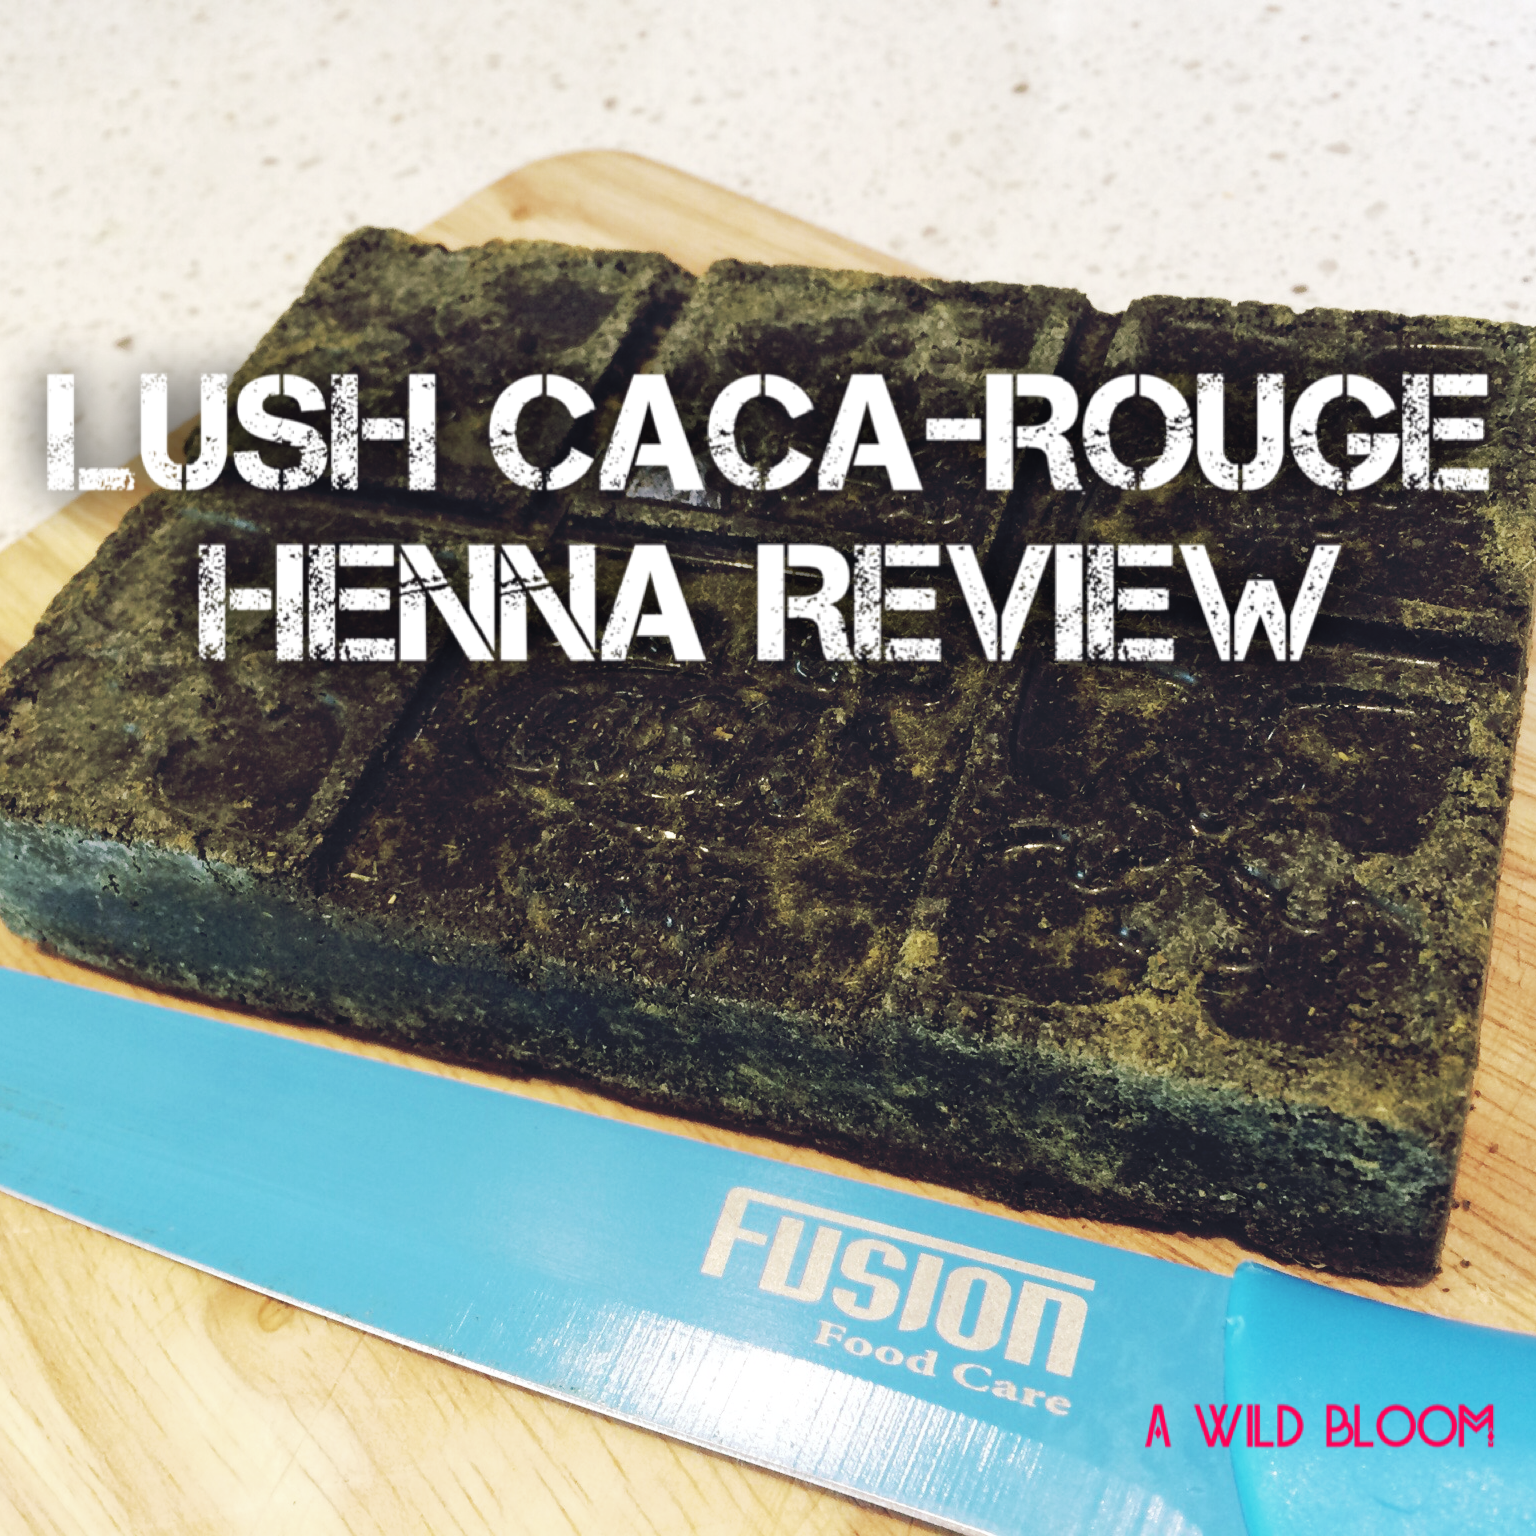 Lush Caca Rouge Henna Review